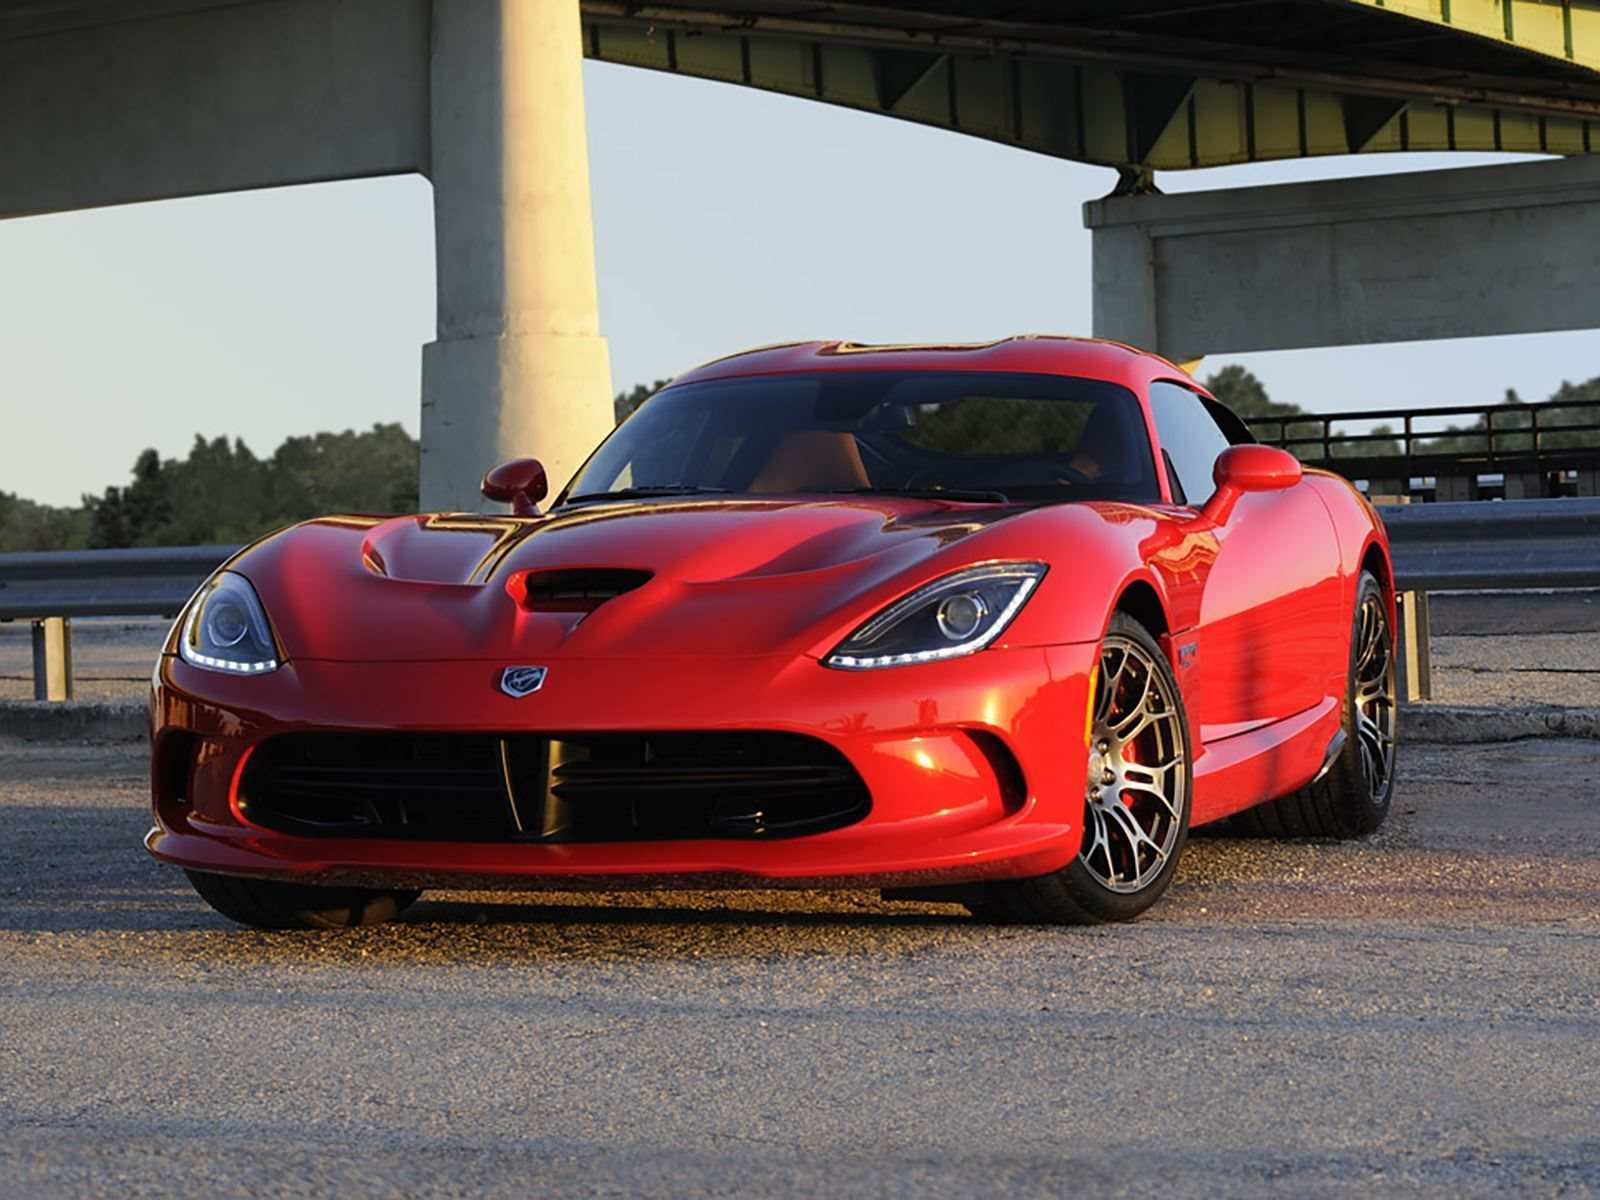 74 All New 2019 Dodge Viper Price Pricing with 2019 Dodge Viper Price